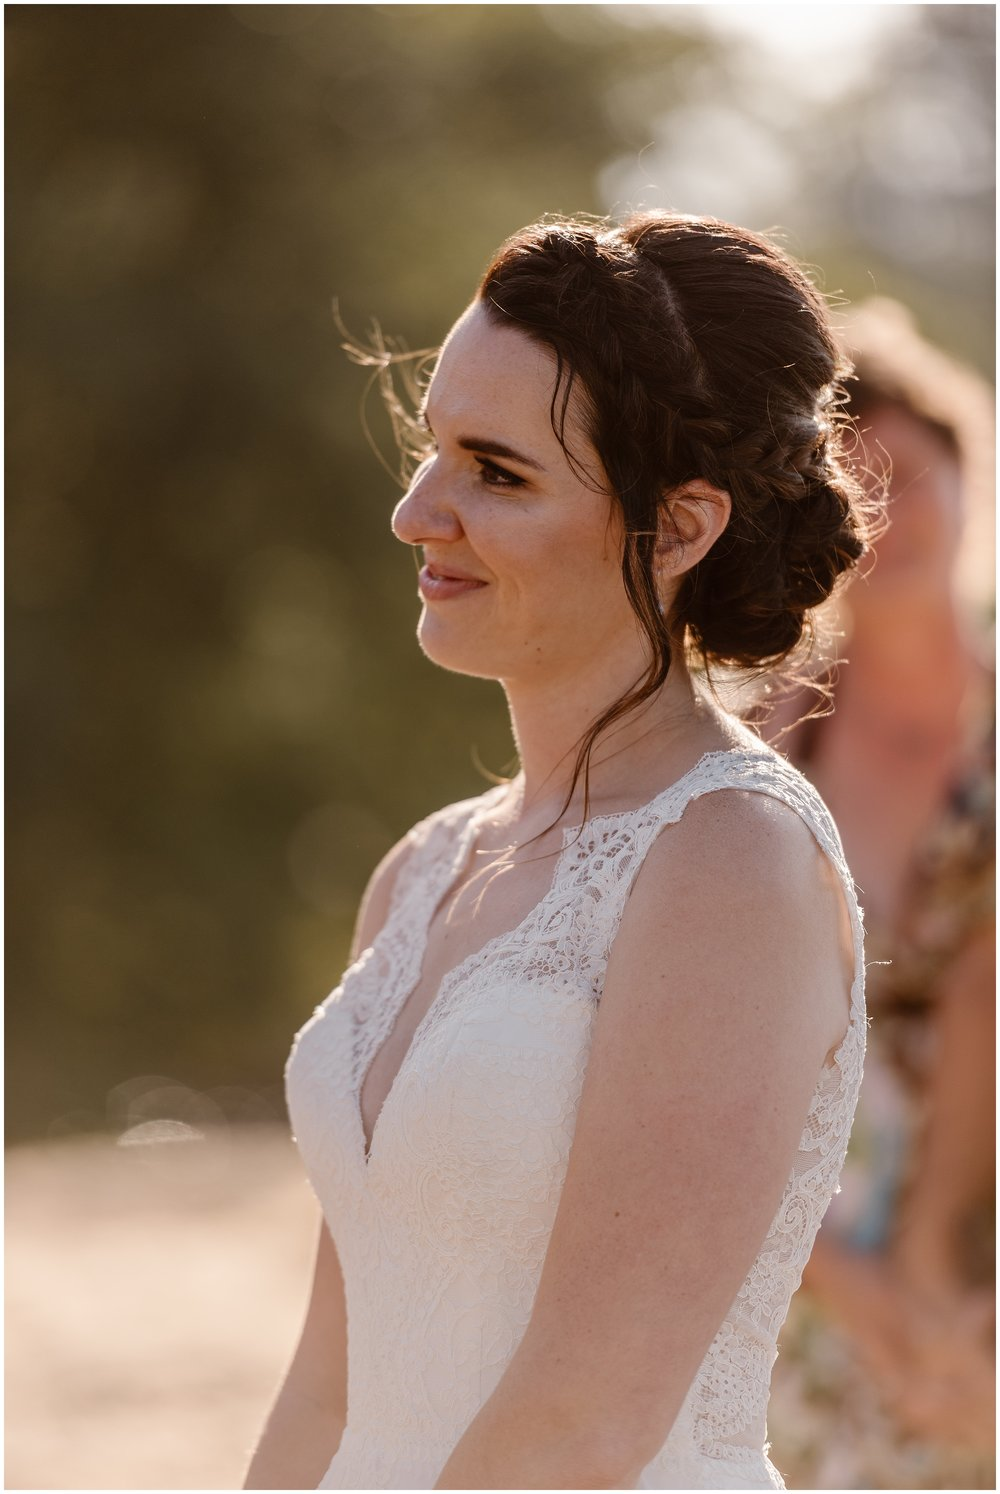 In this elopement photo captured by Adventure Instead (an Oregon elopement photographer) , the bride, Lauryn is shown looking and smiling at her groom, David. Lauryn is dressed in a cream-colored, lace wedding gown and her hair is braided back into a bun.